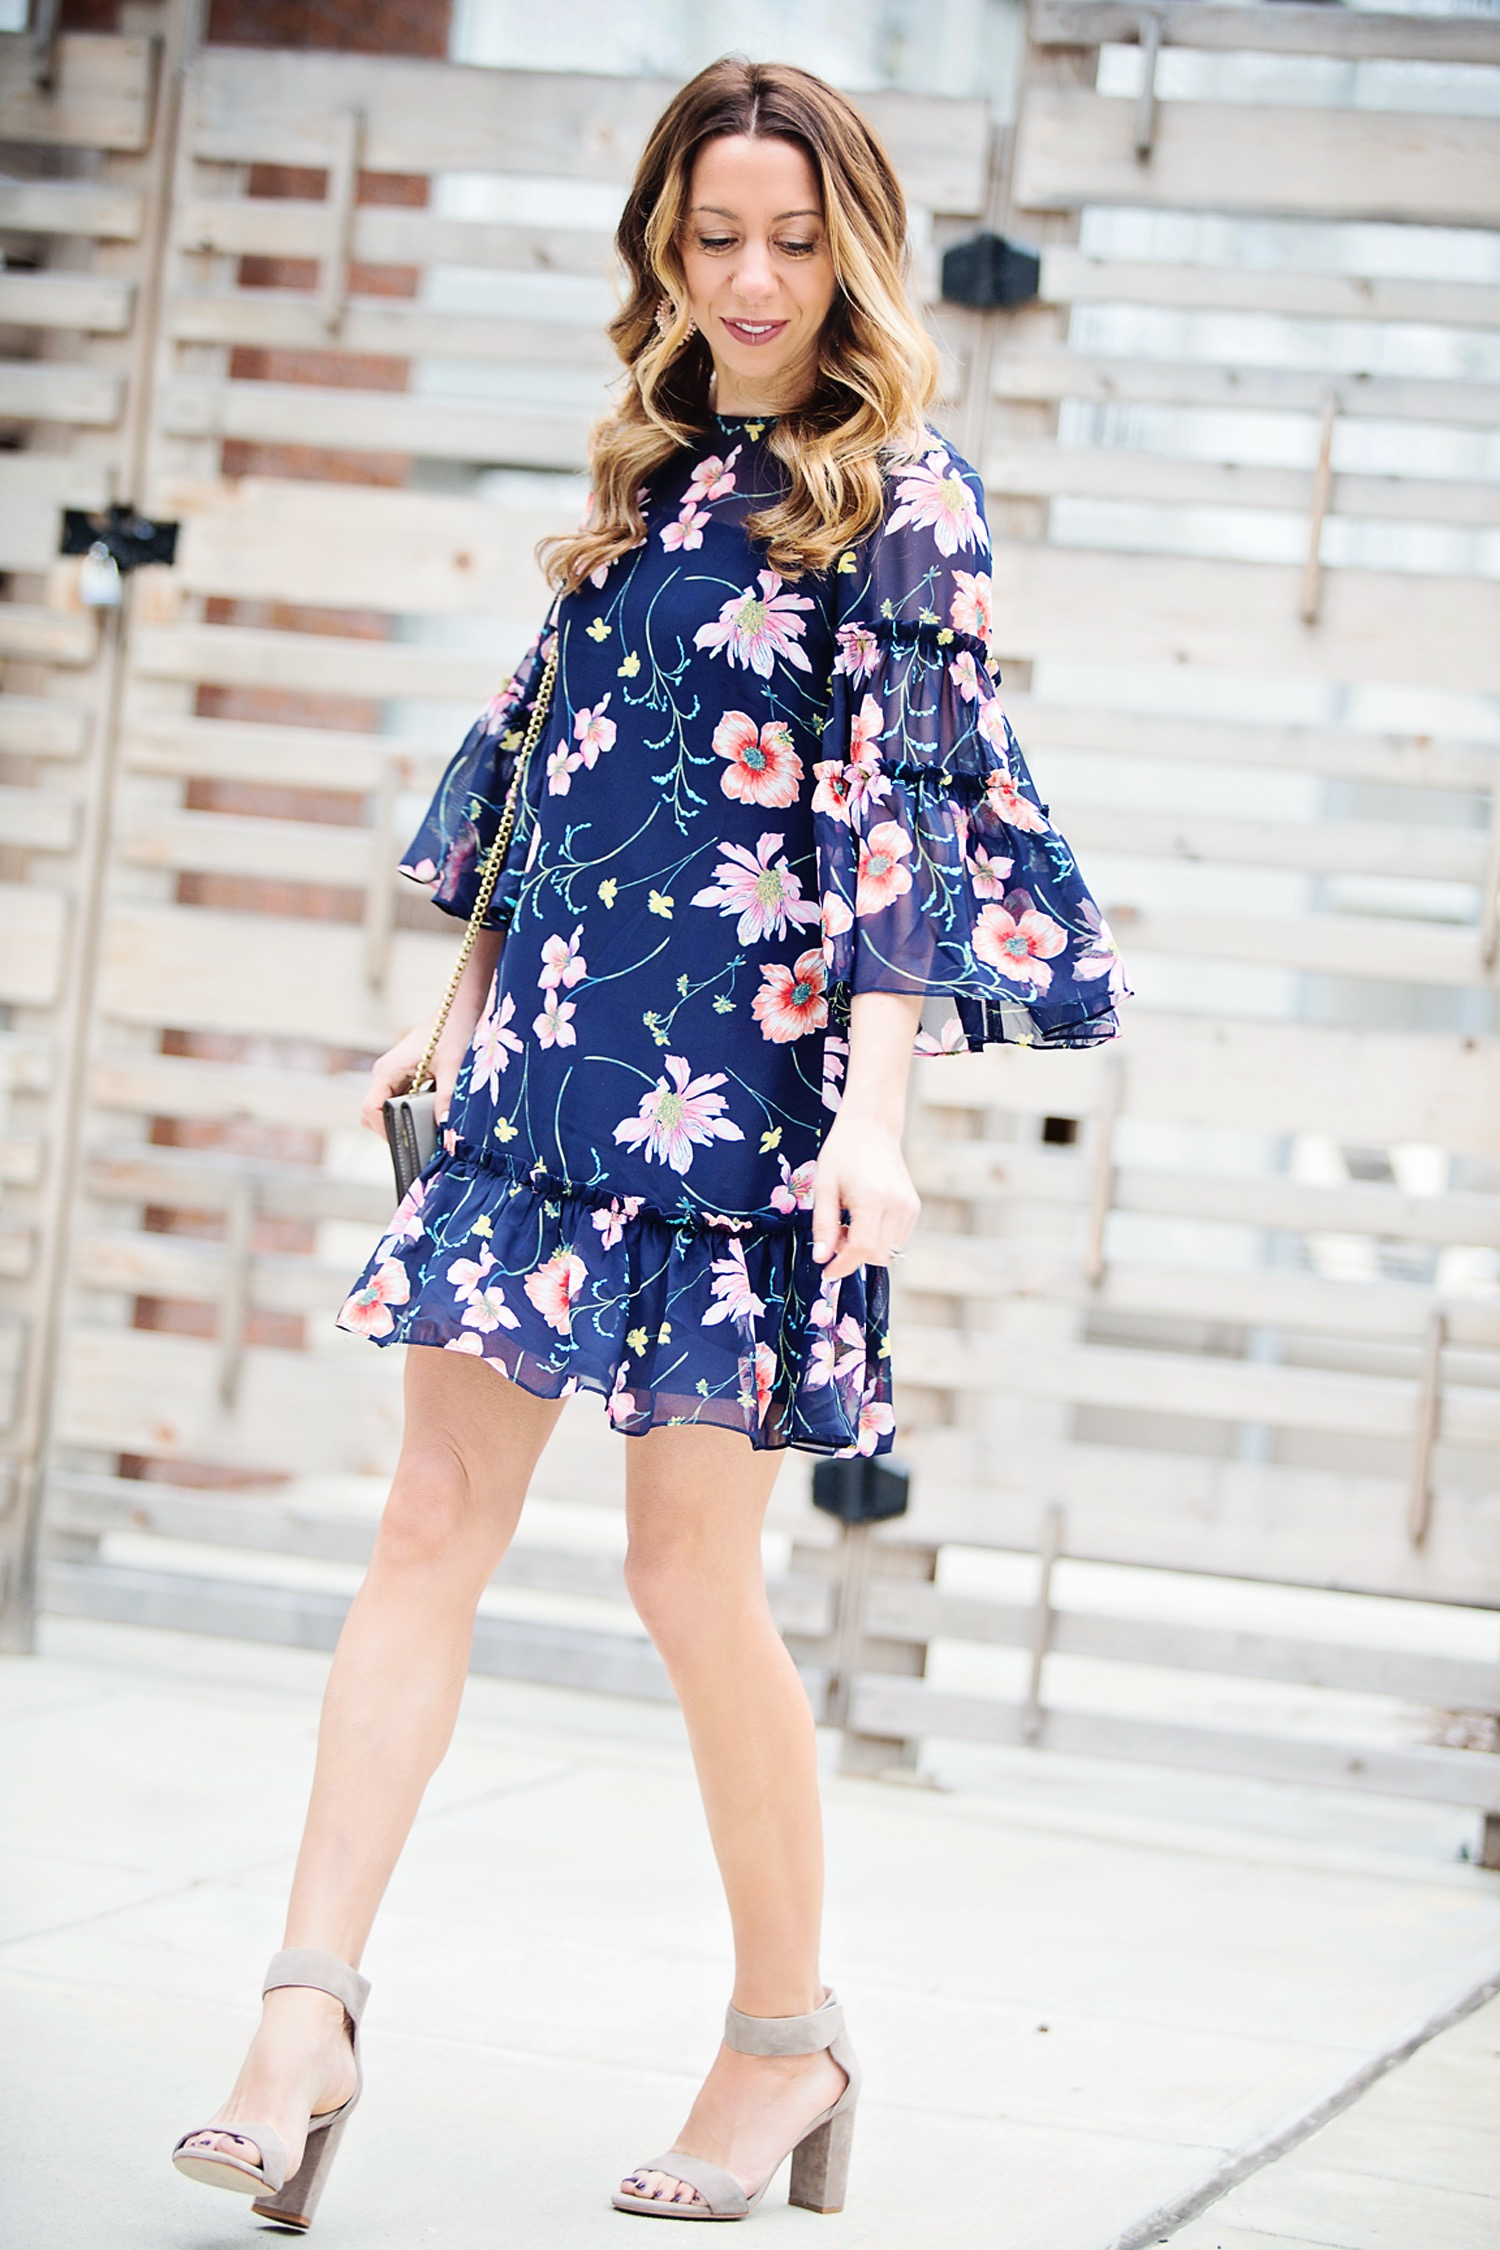 The Motherchic wearing Nordstrom floral dress